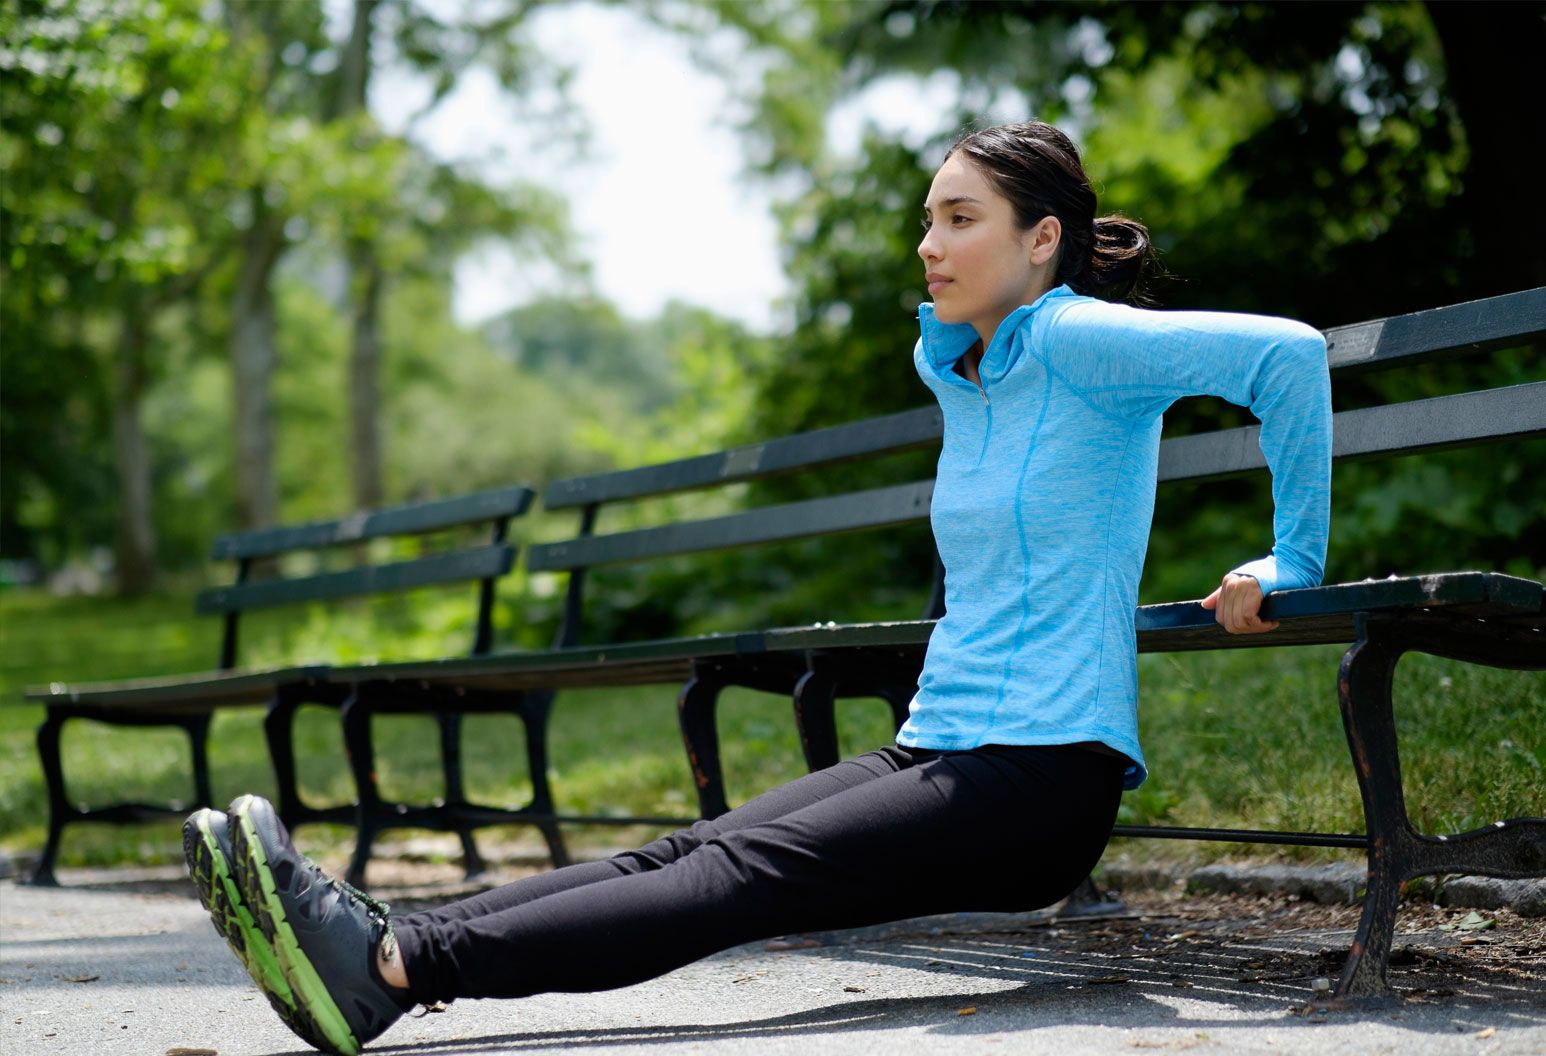 A young woman leans on a New York City park bench and stretches. She's wearing a bright blue athletic sweatshirt and black leggings and sneakers. Her dark hair is pulled back in a low bun.